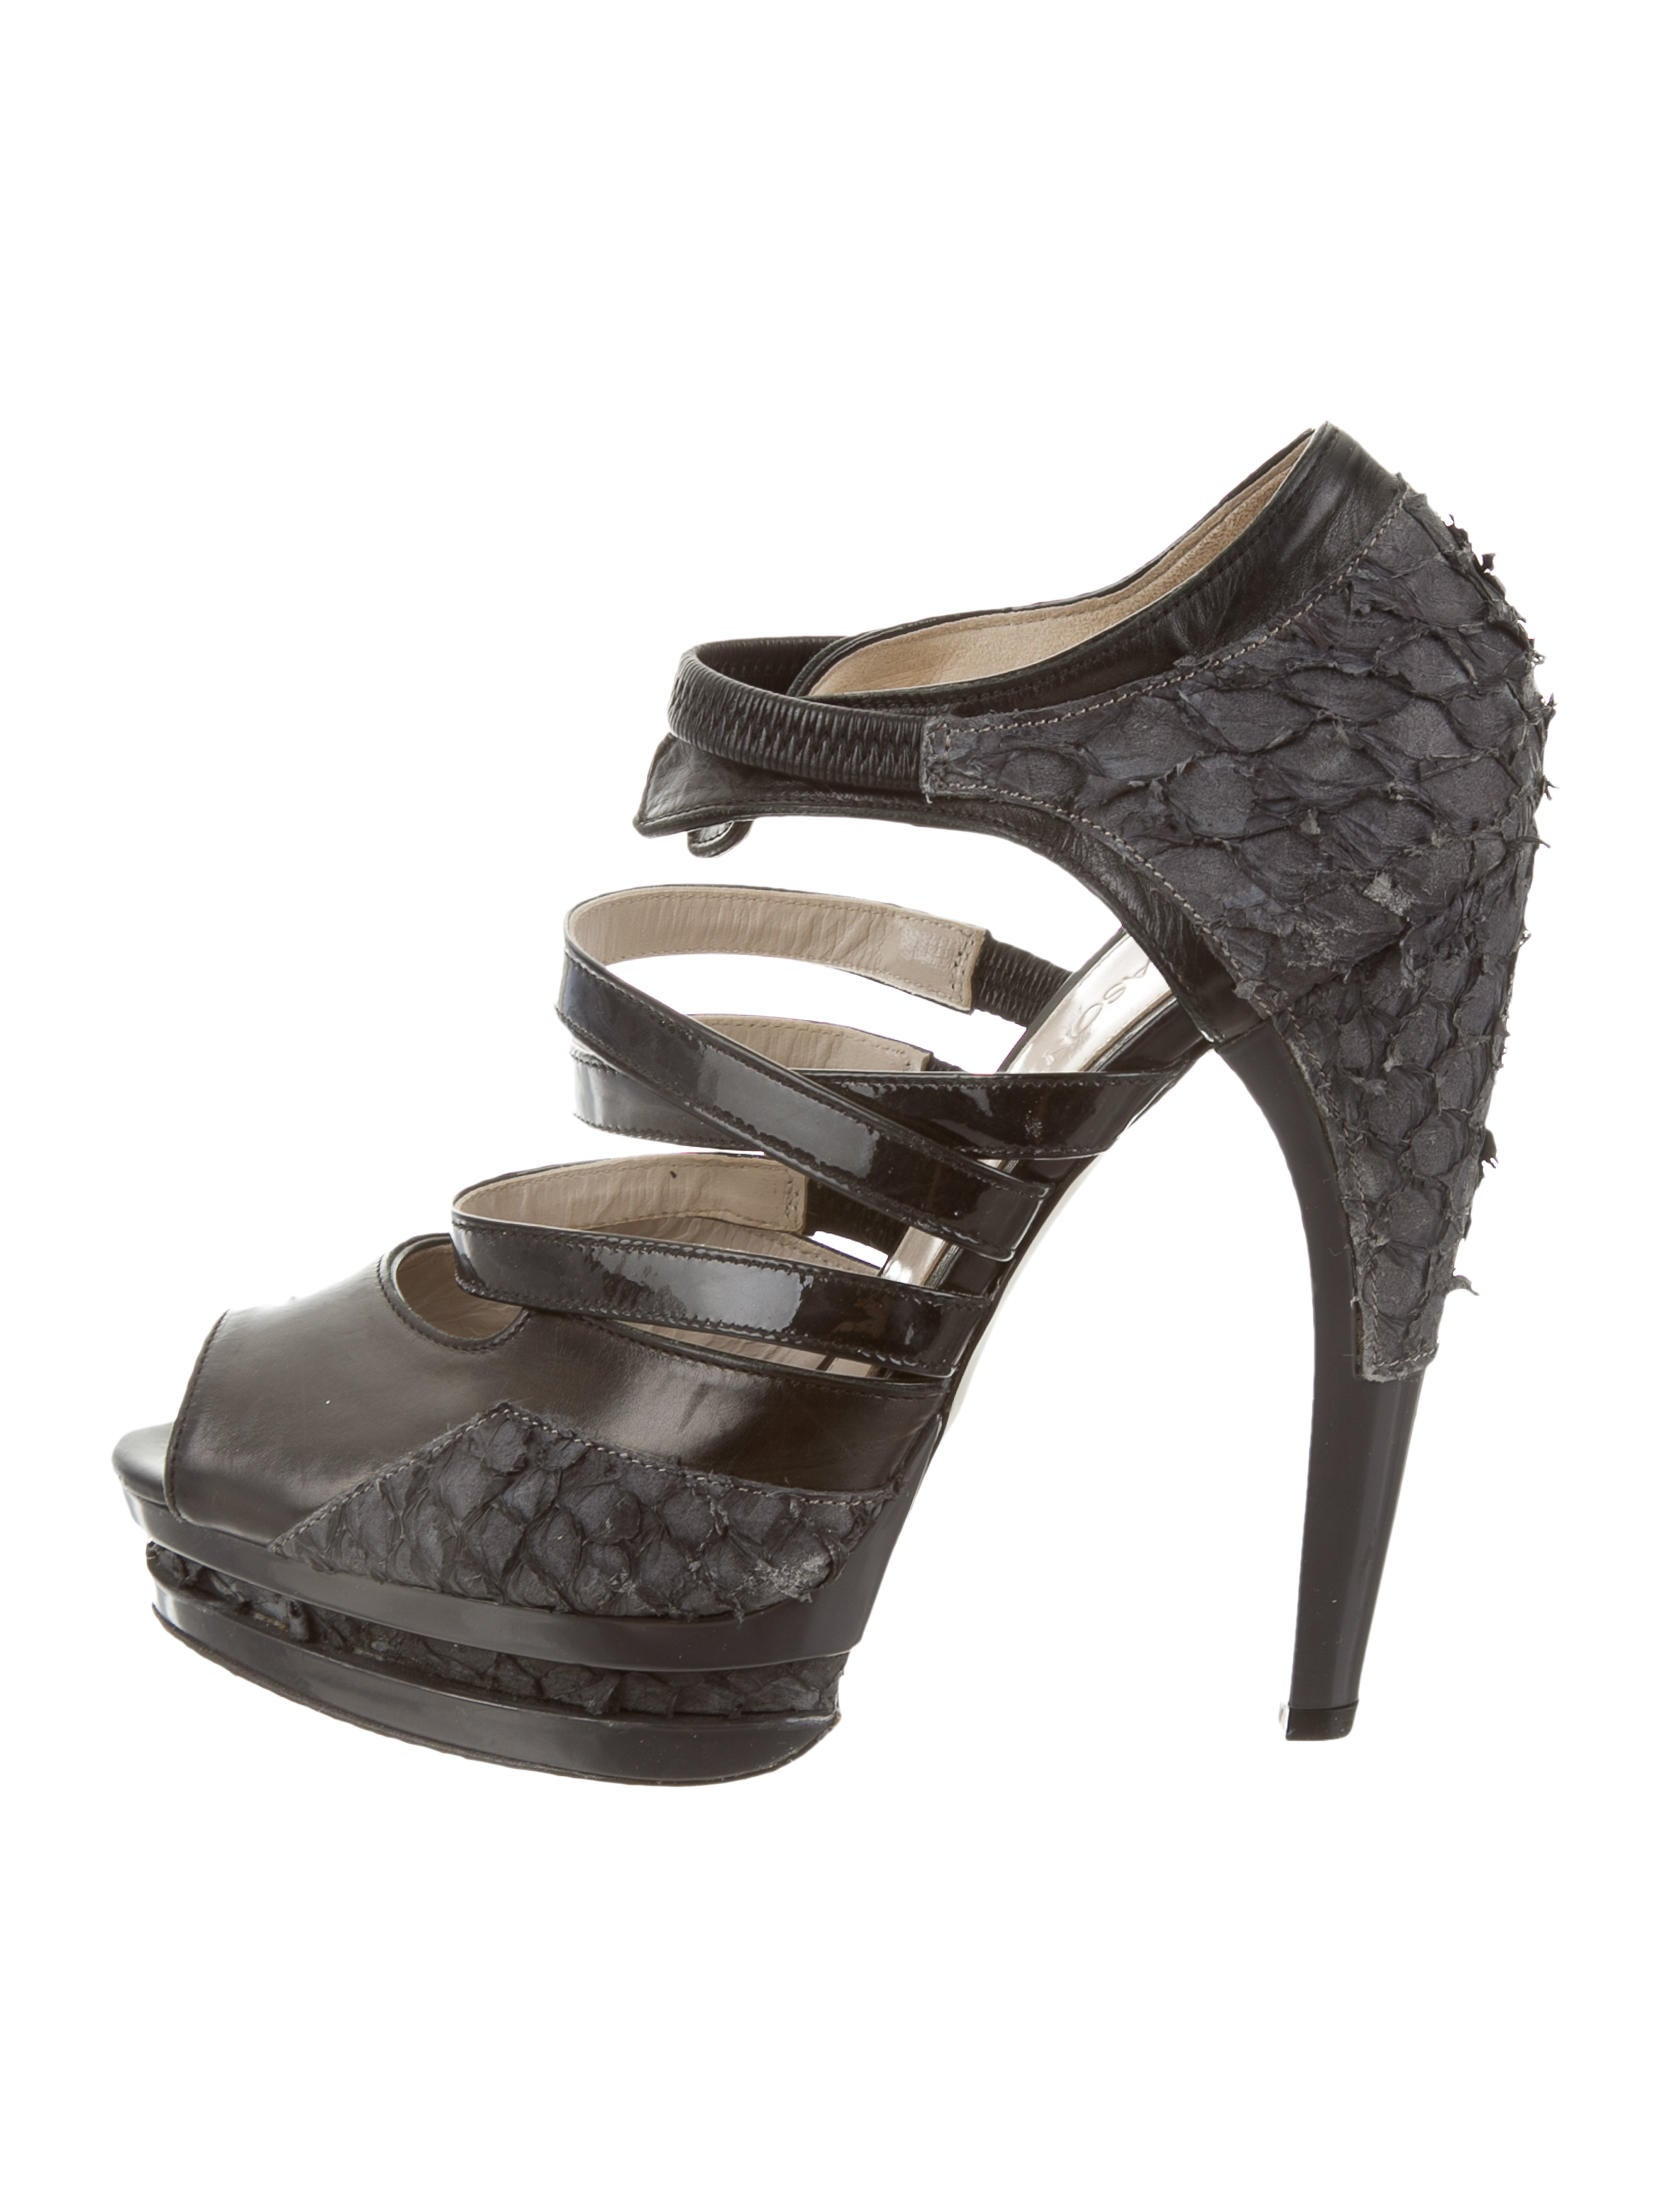 Jason wu fish skin platform sandals shoes jas22711 for Shoes with fish in them